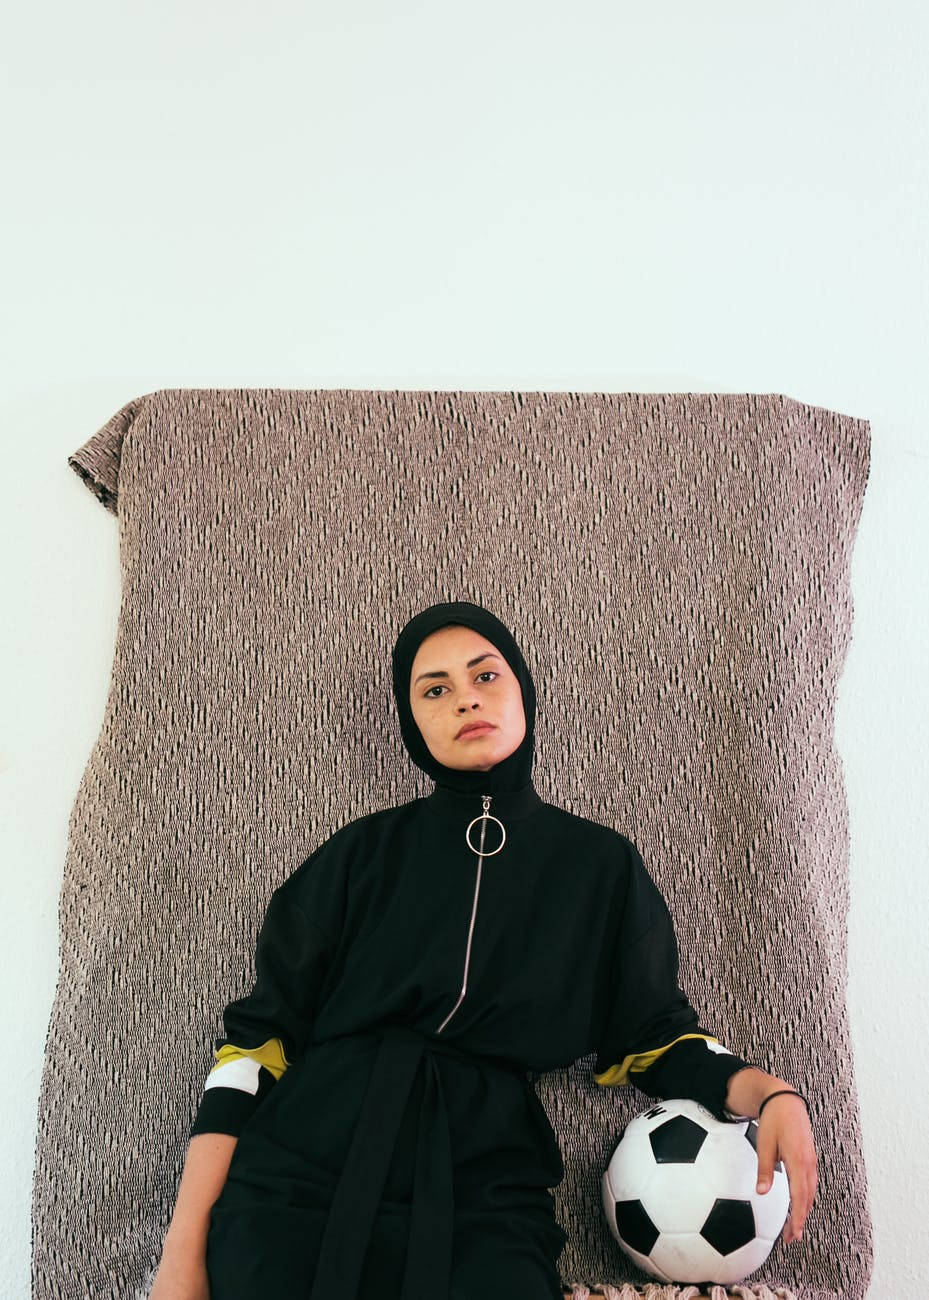 photo of woman in black hijab holding soccer ball